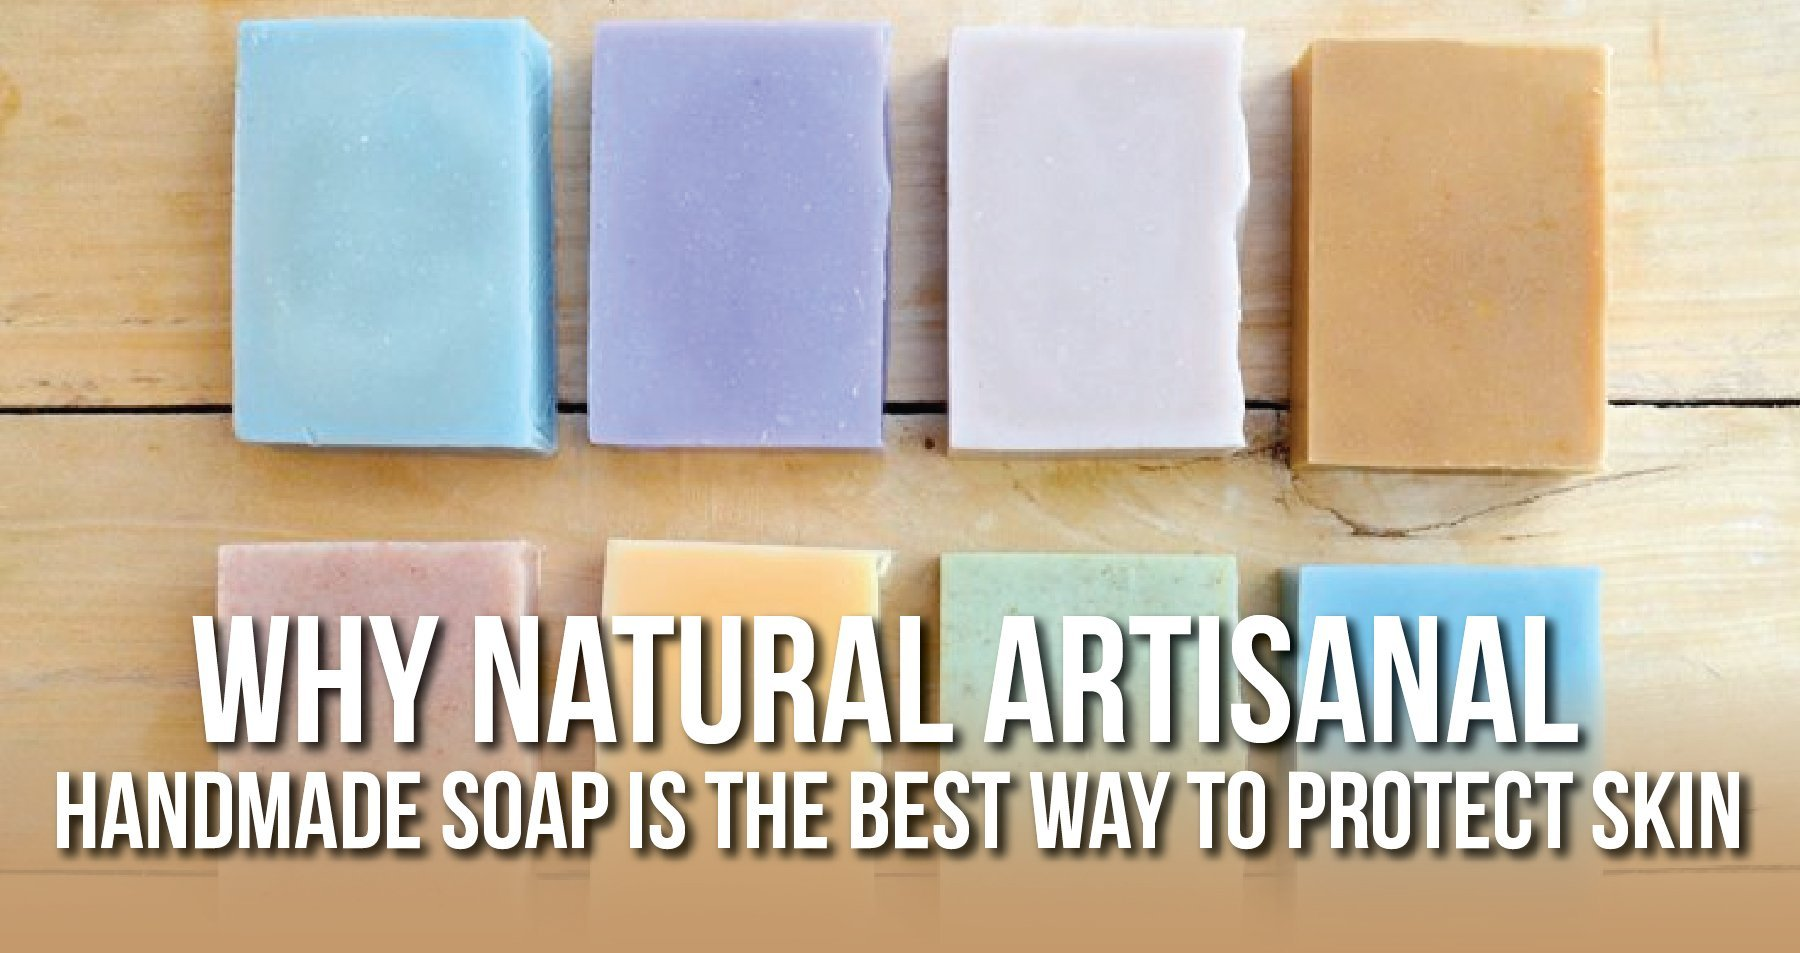 Natural Artisanal Handmade Soap - Reap What You Soap | iHeart Nature